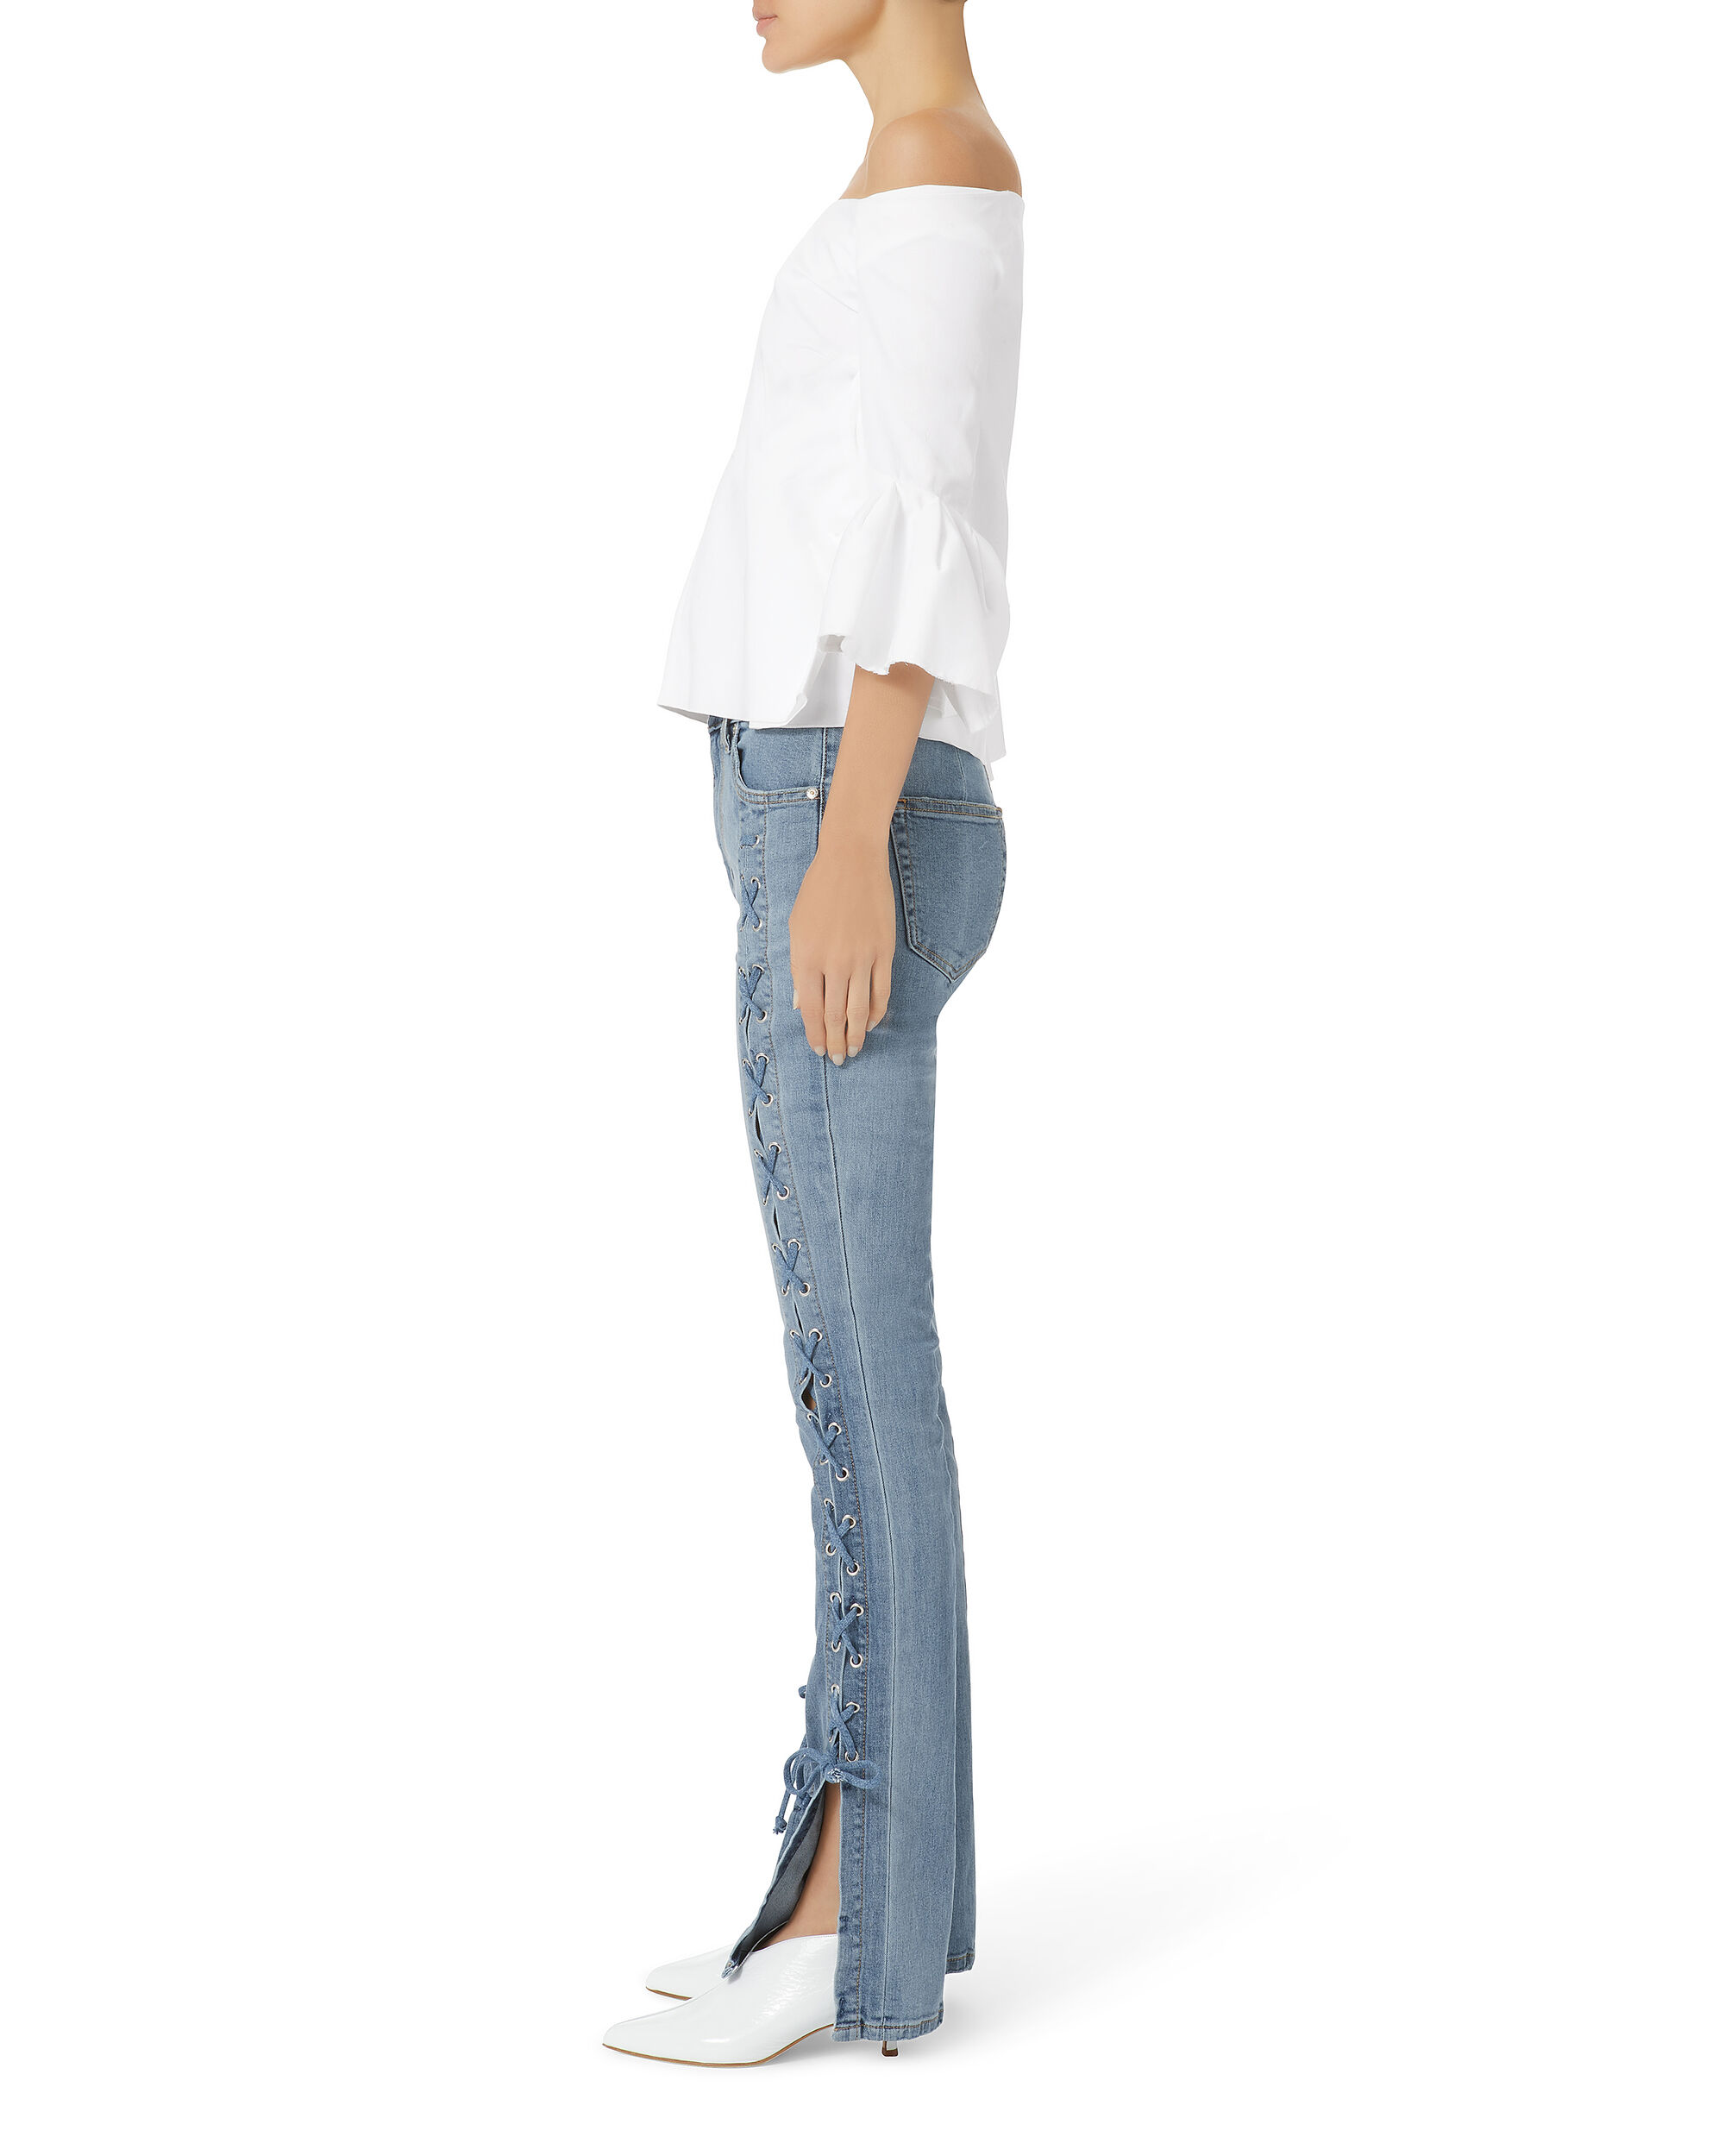 Lace-Up Stovepipe Blue Jeans, BLUE, hi-res